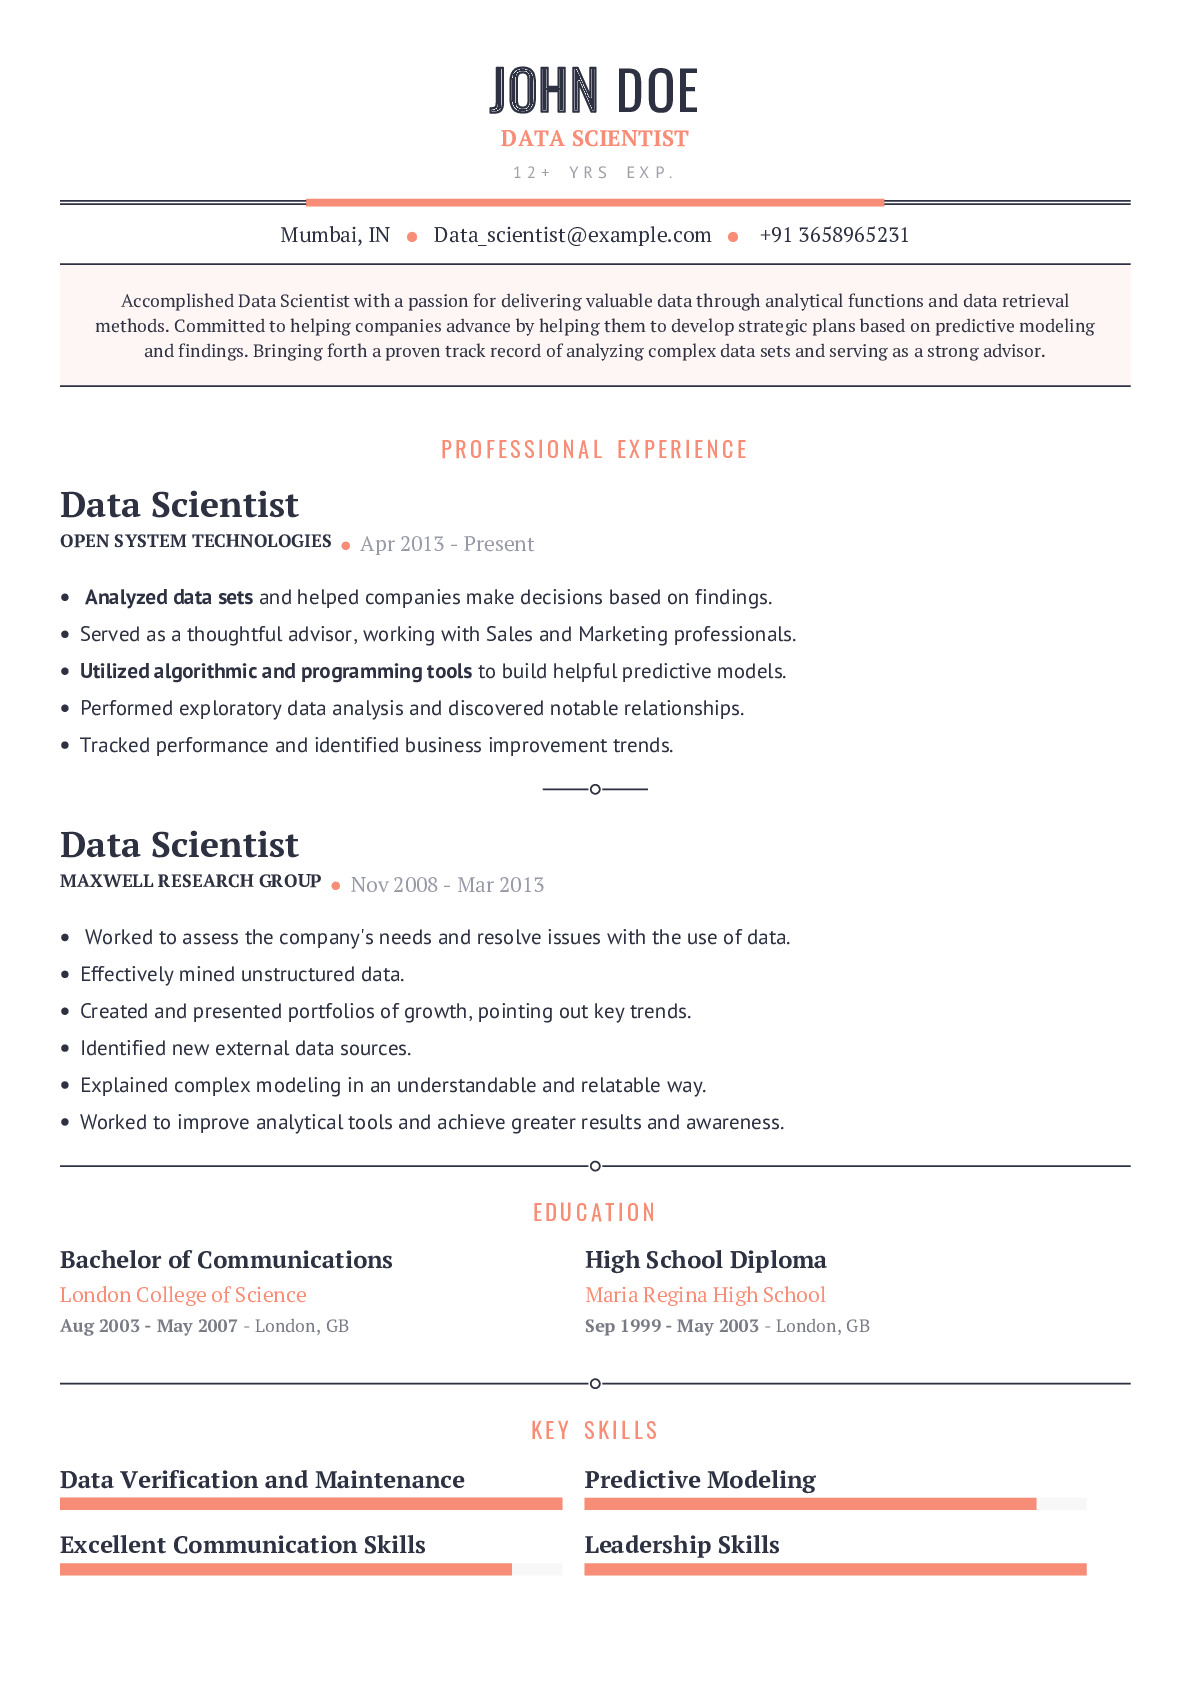 data scientist resume example with prefilled content